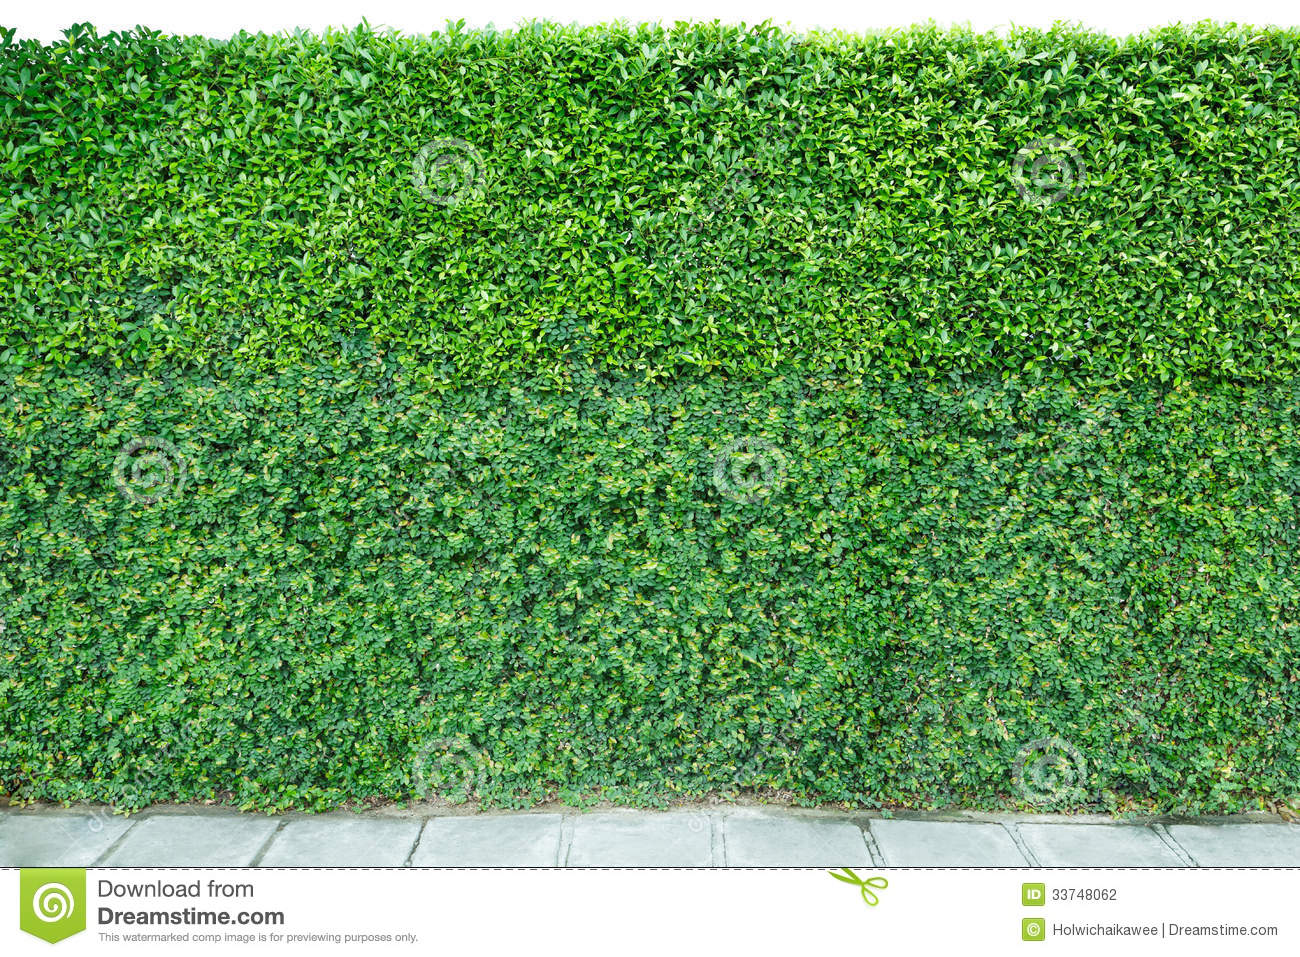 Old brick wall as a frame 01 stock photo image 18377500 - Old Brick Wall As A Frame 01 Decorative Garden On A Brick Fence And Floor Stock Photography